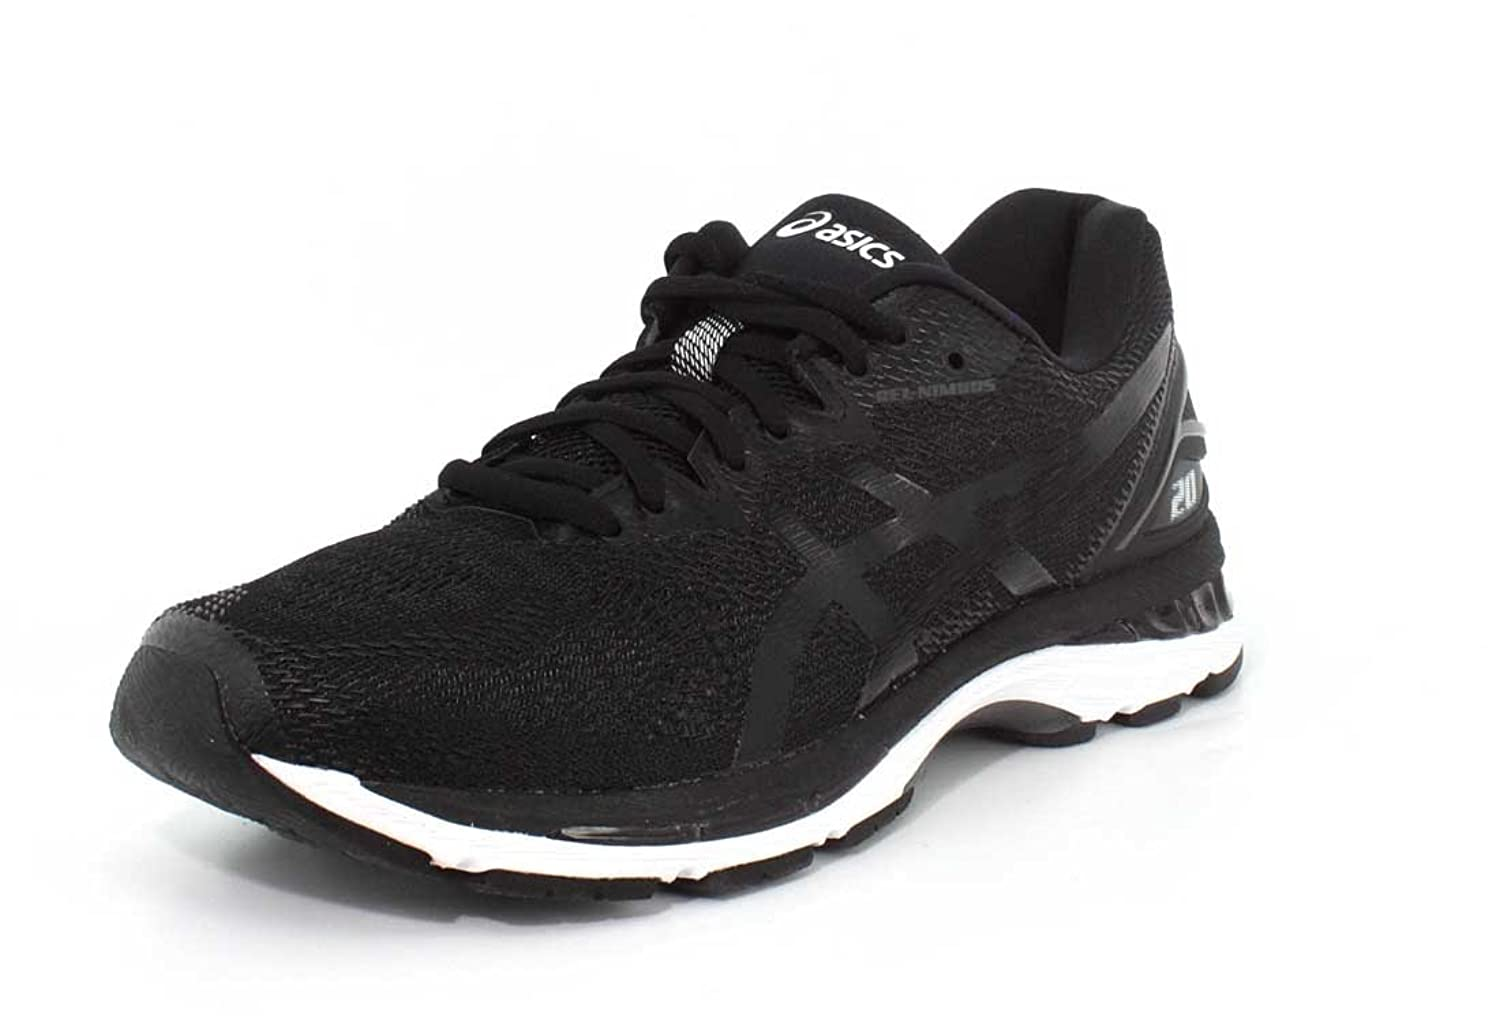 Asics Mens Zapatos Amazon bqEd29zY7